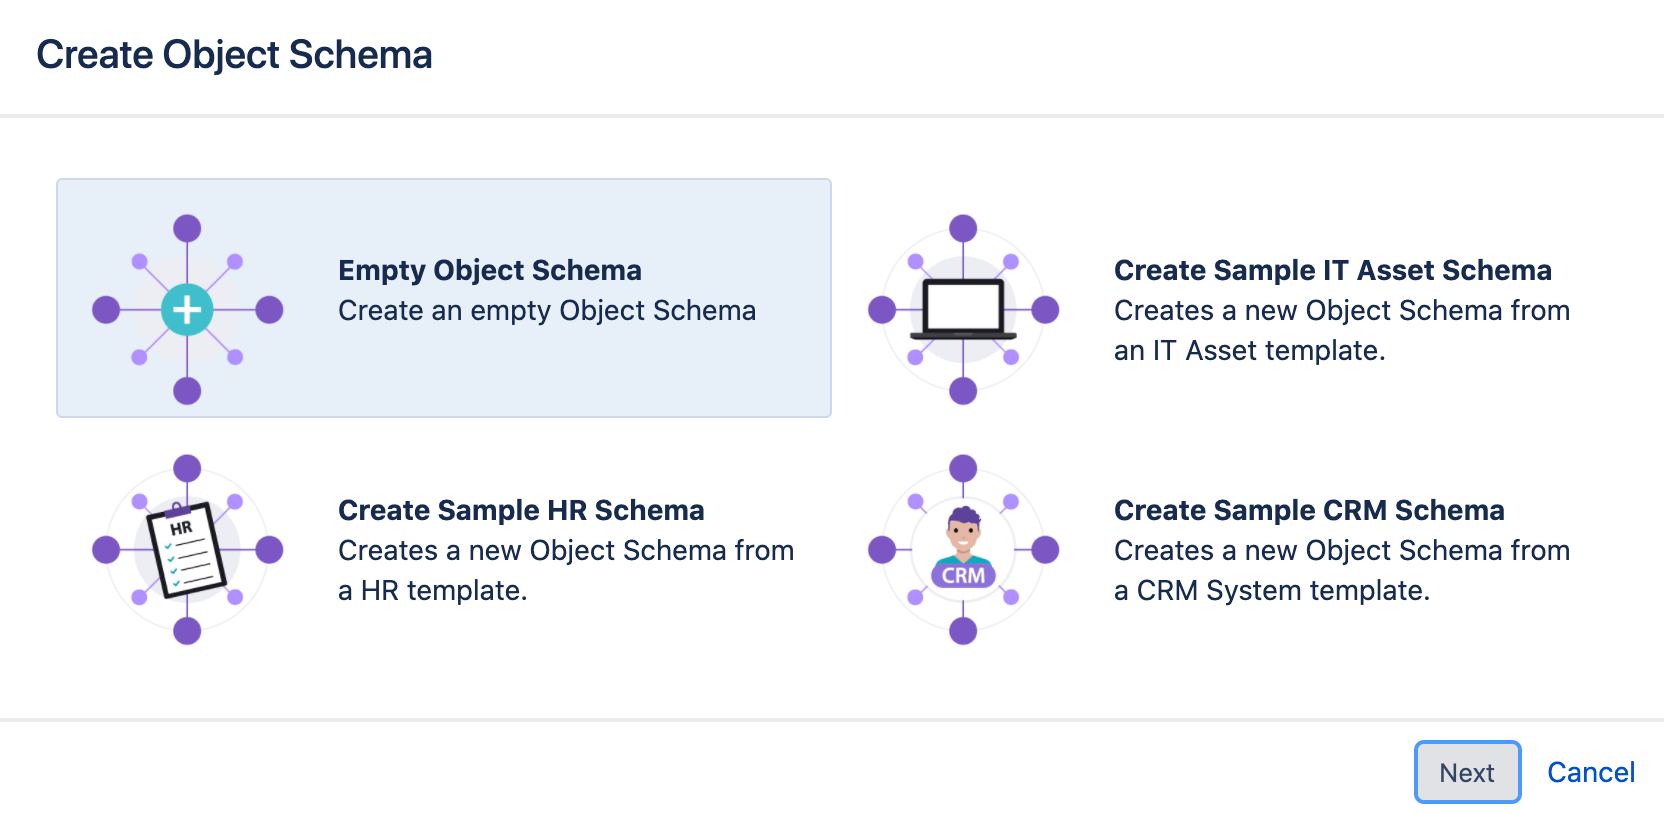 Object schema create form with the options of empty schema, IT asset schema, HR schema and CRM schema.